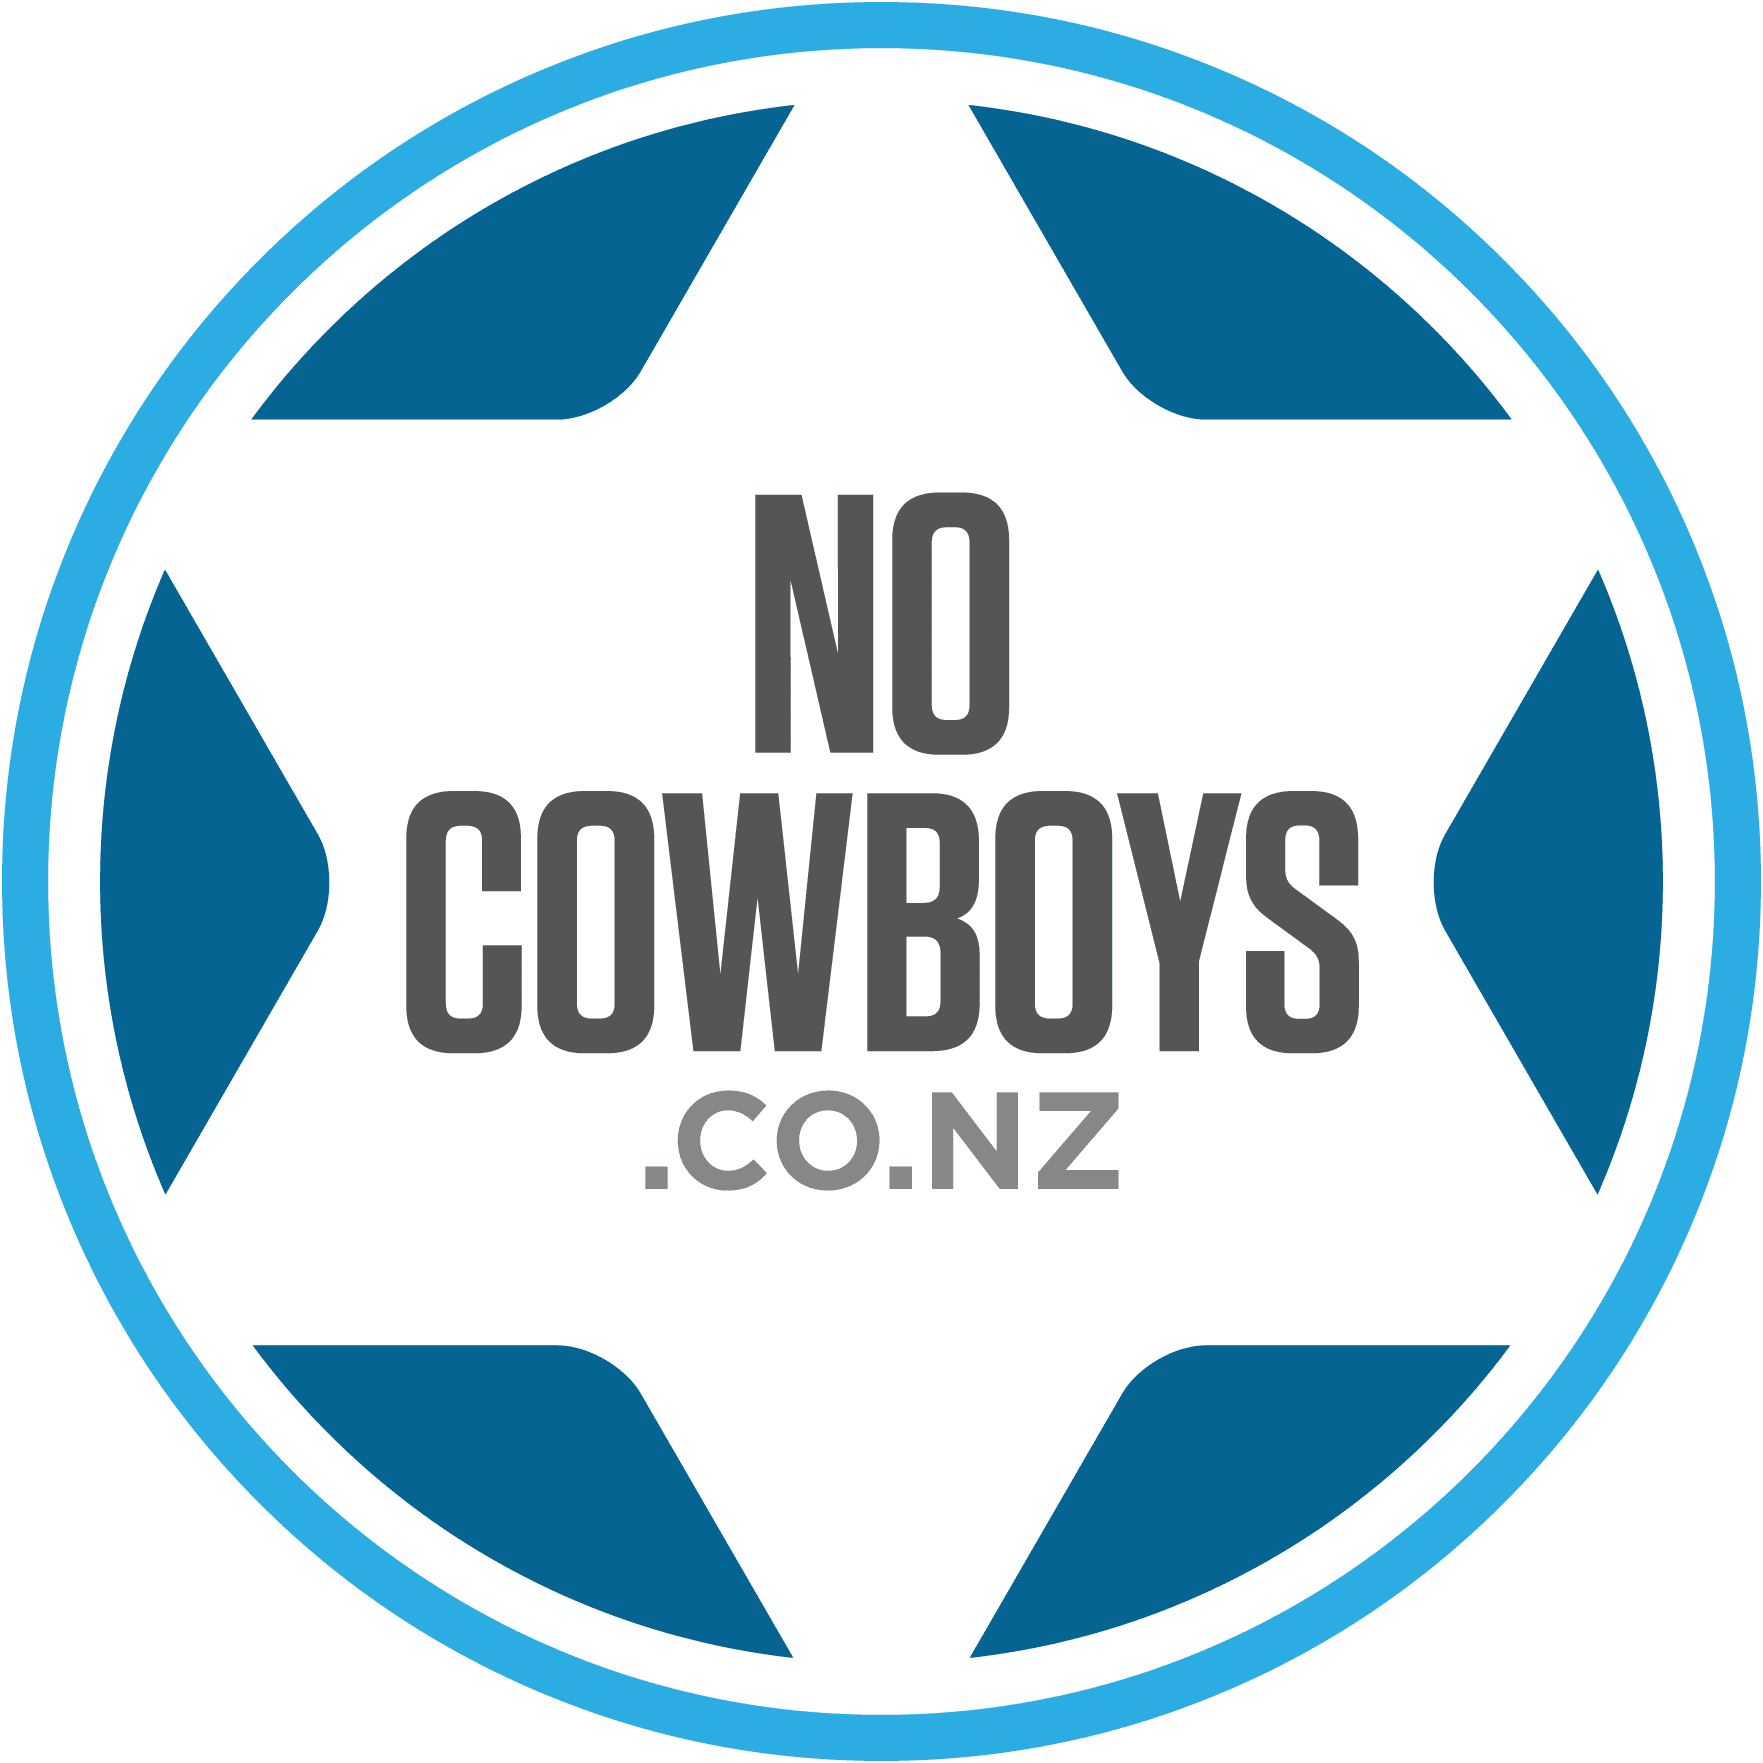 No Cowboys wellington electricians - No Cowboys - MC Electrical | Home